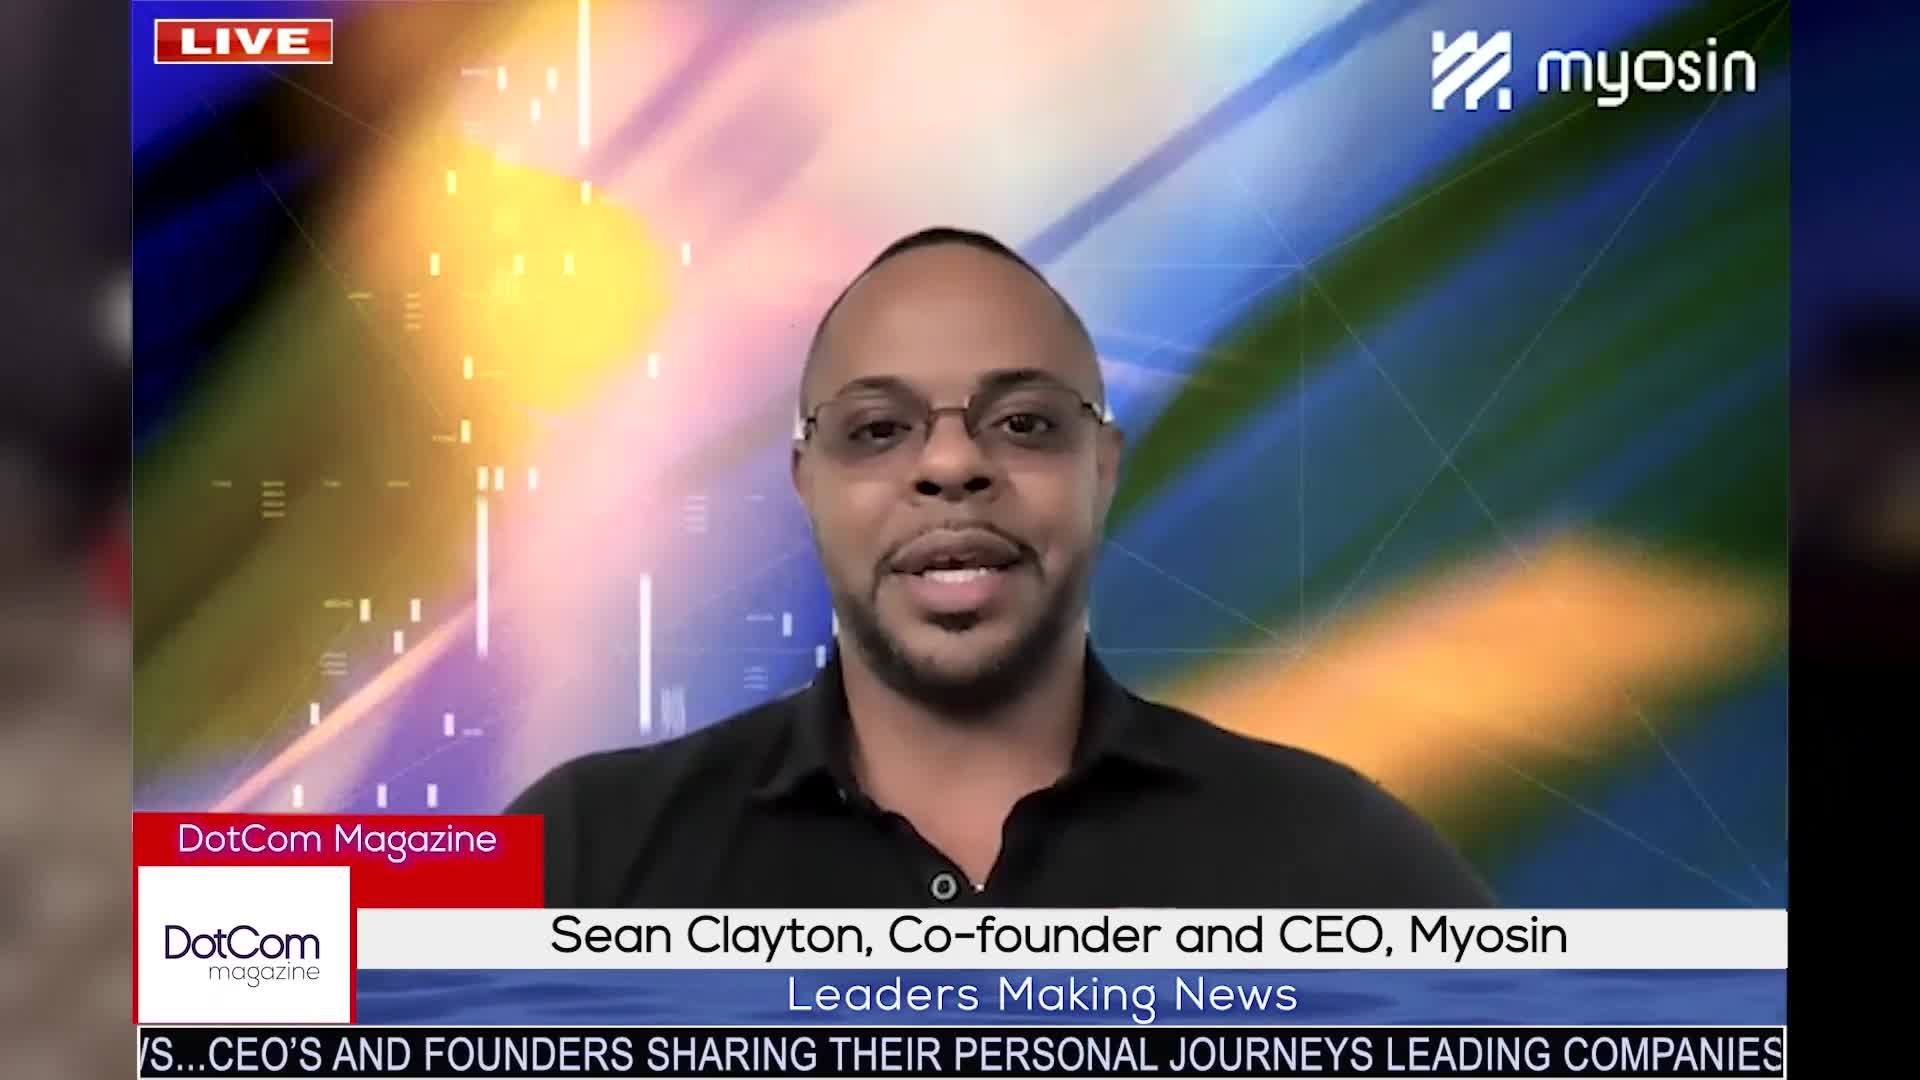 Sean Clayton, Co-founder and CEO of Myosin, a DotCom Magazine Exclusive Interview